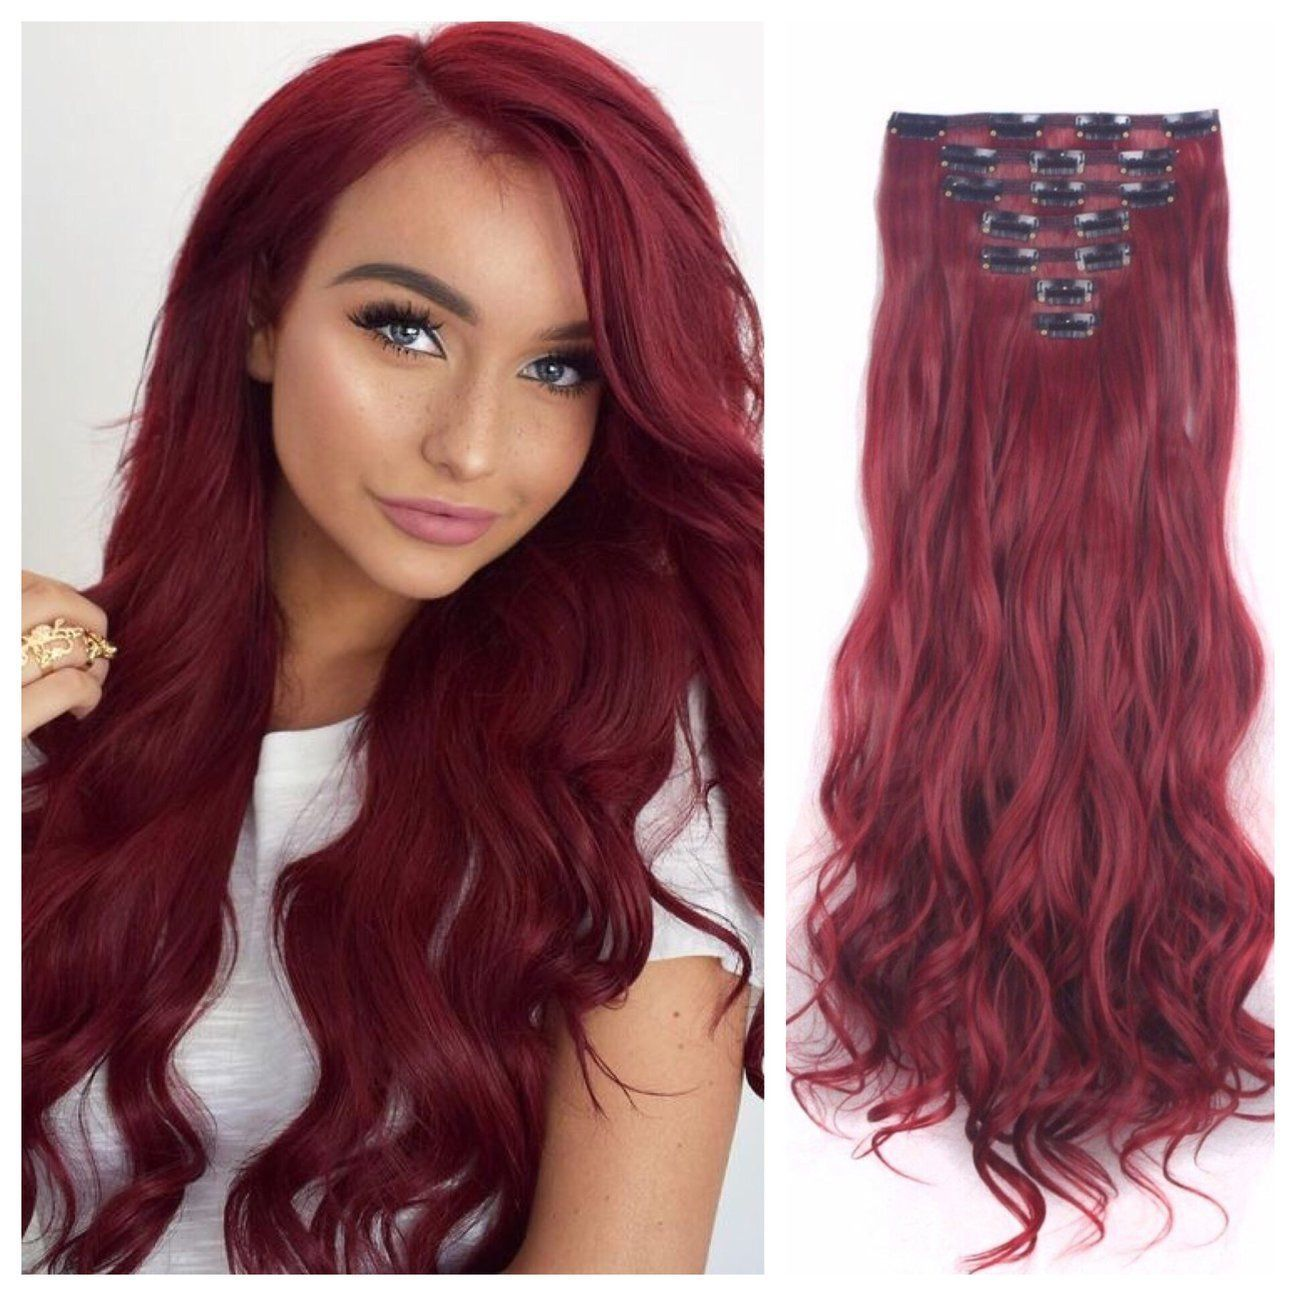 Dark Red Clip In Hair Extensions Remy Human Hair 24 Wavy Hair 180g